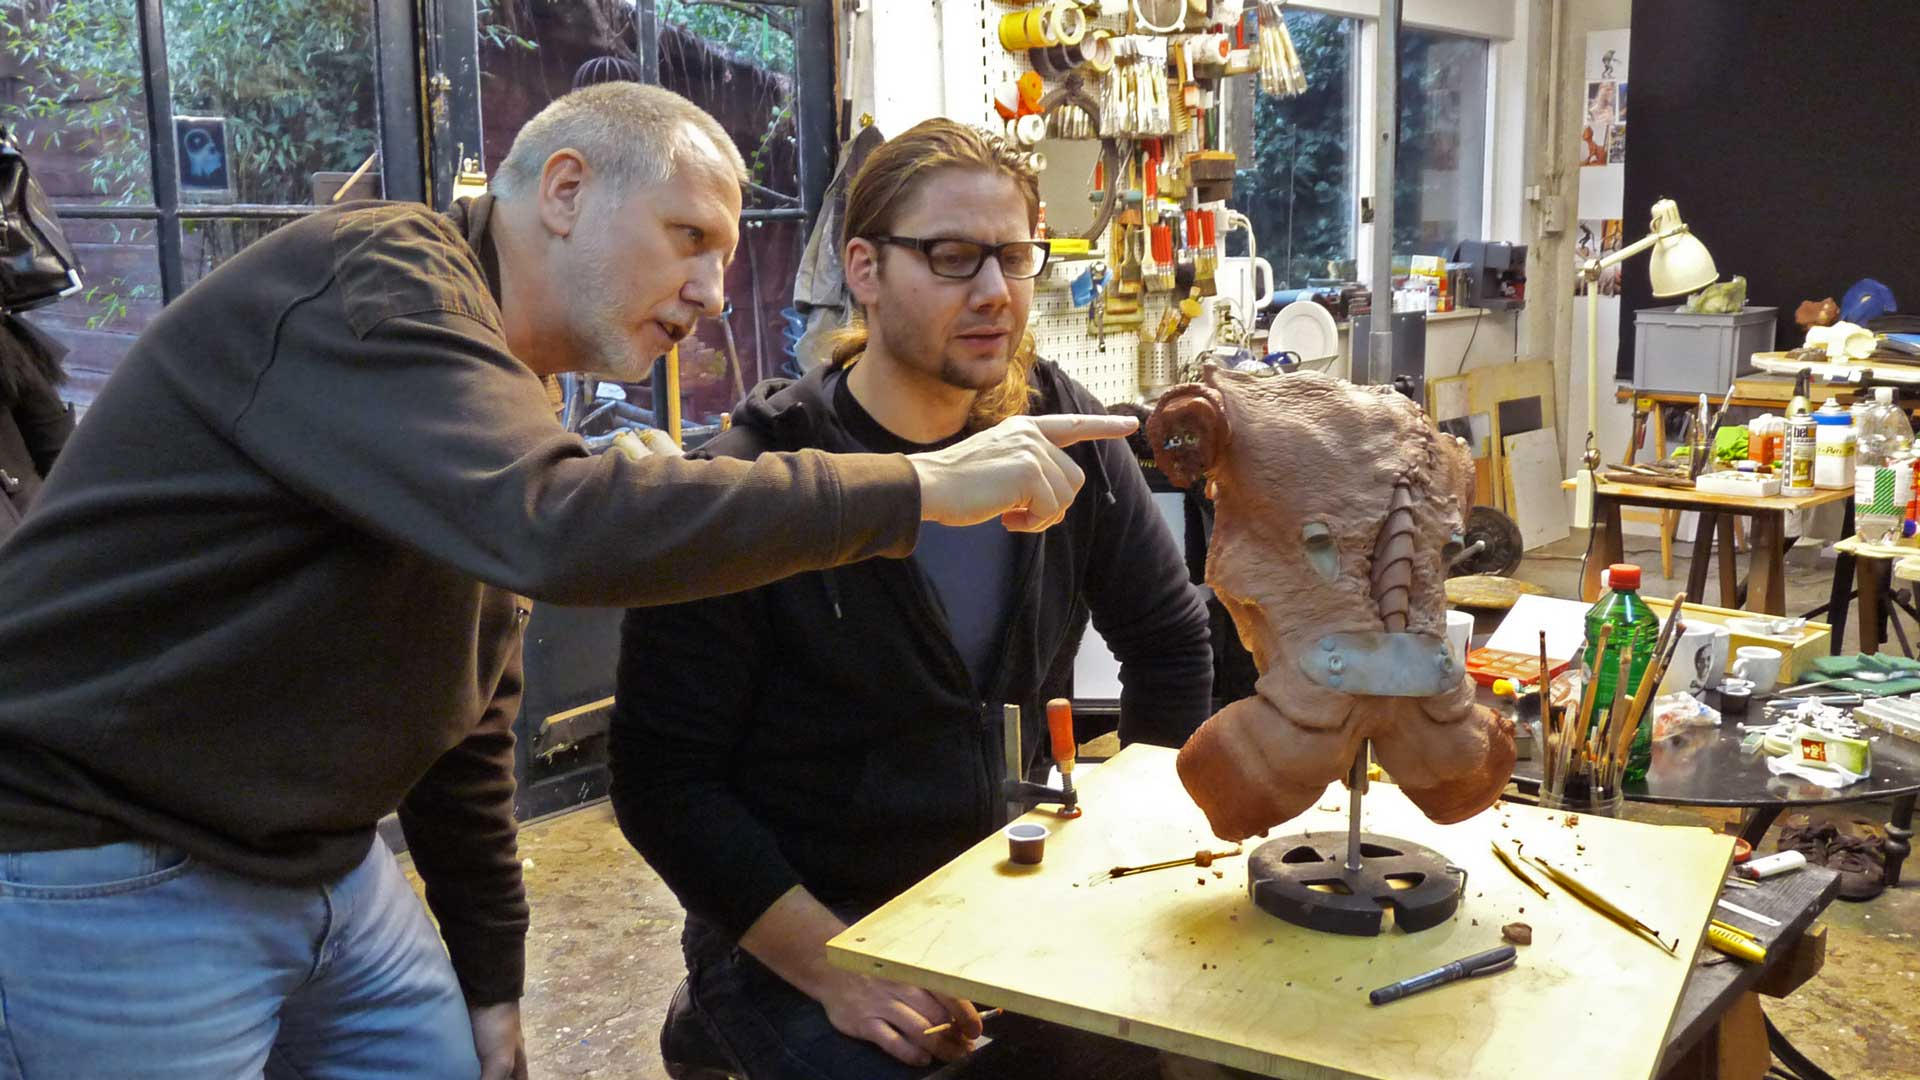 Gregor Spörri and George Steiner from Blendwerk Basel are working on an alien figure.